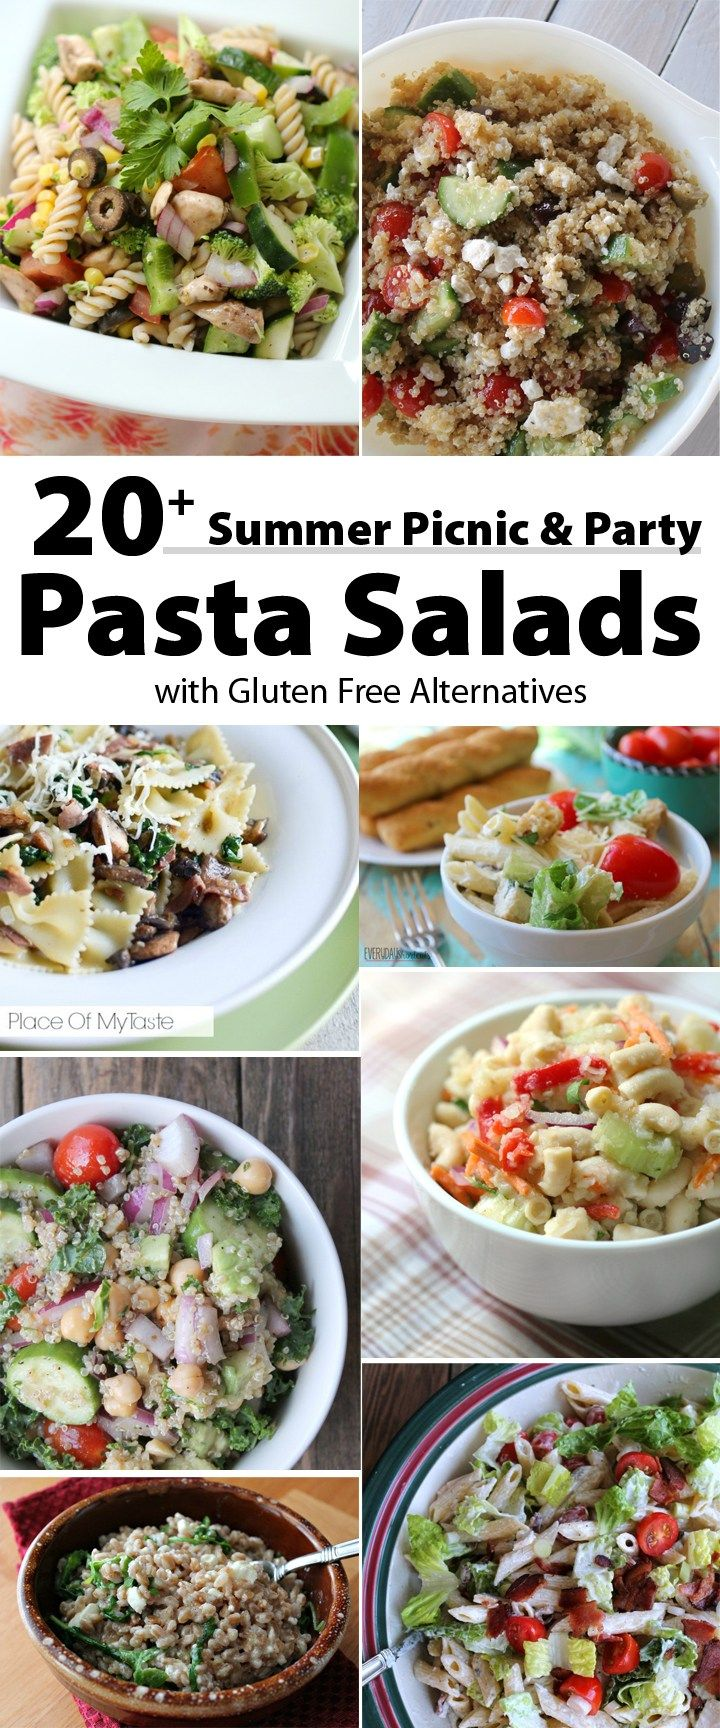 20 + Summer Picnic Pasta Recipes with Gluten Free Alternatives.